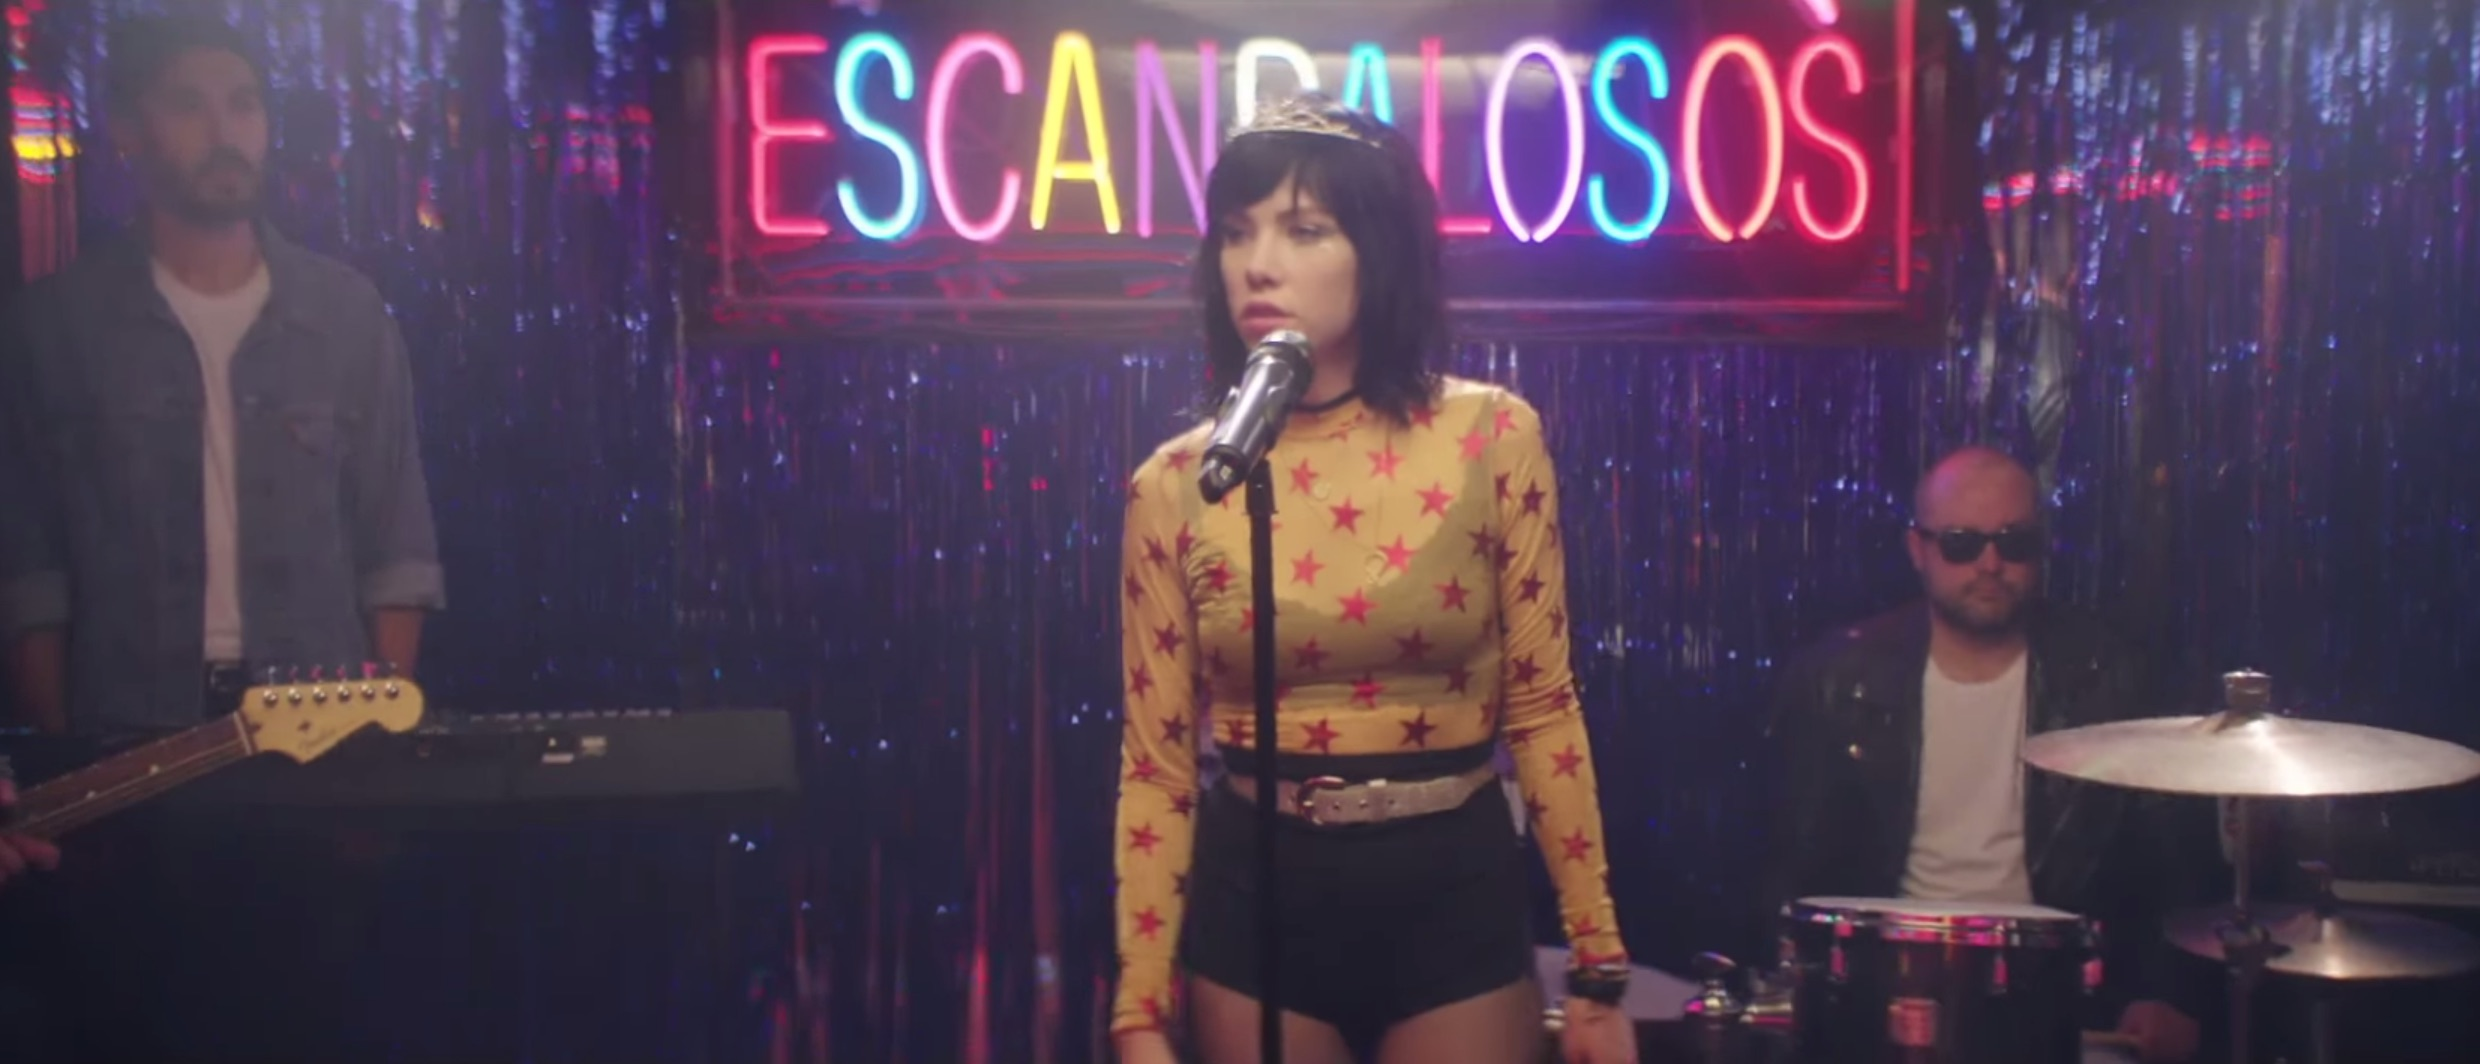 霓虹炫彩:Carly Rae Jepsen -《Your Type》MV 釋出 1